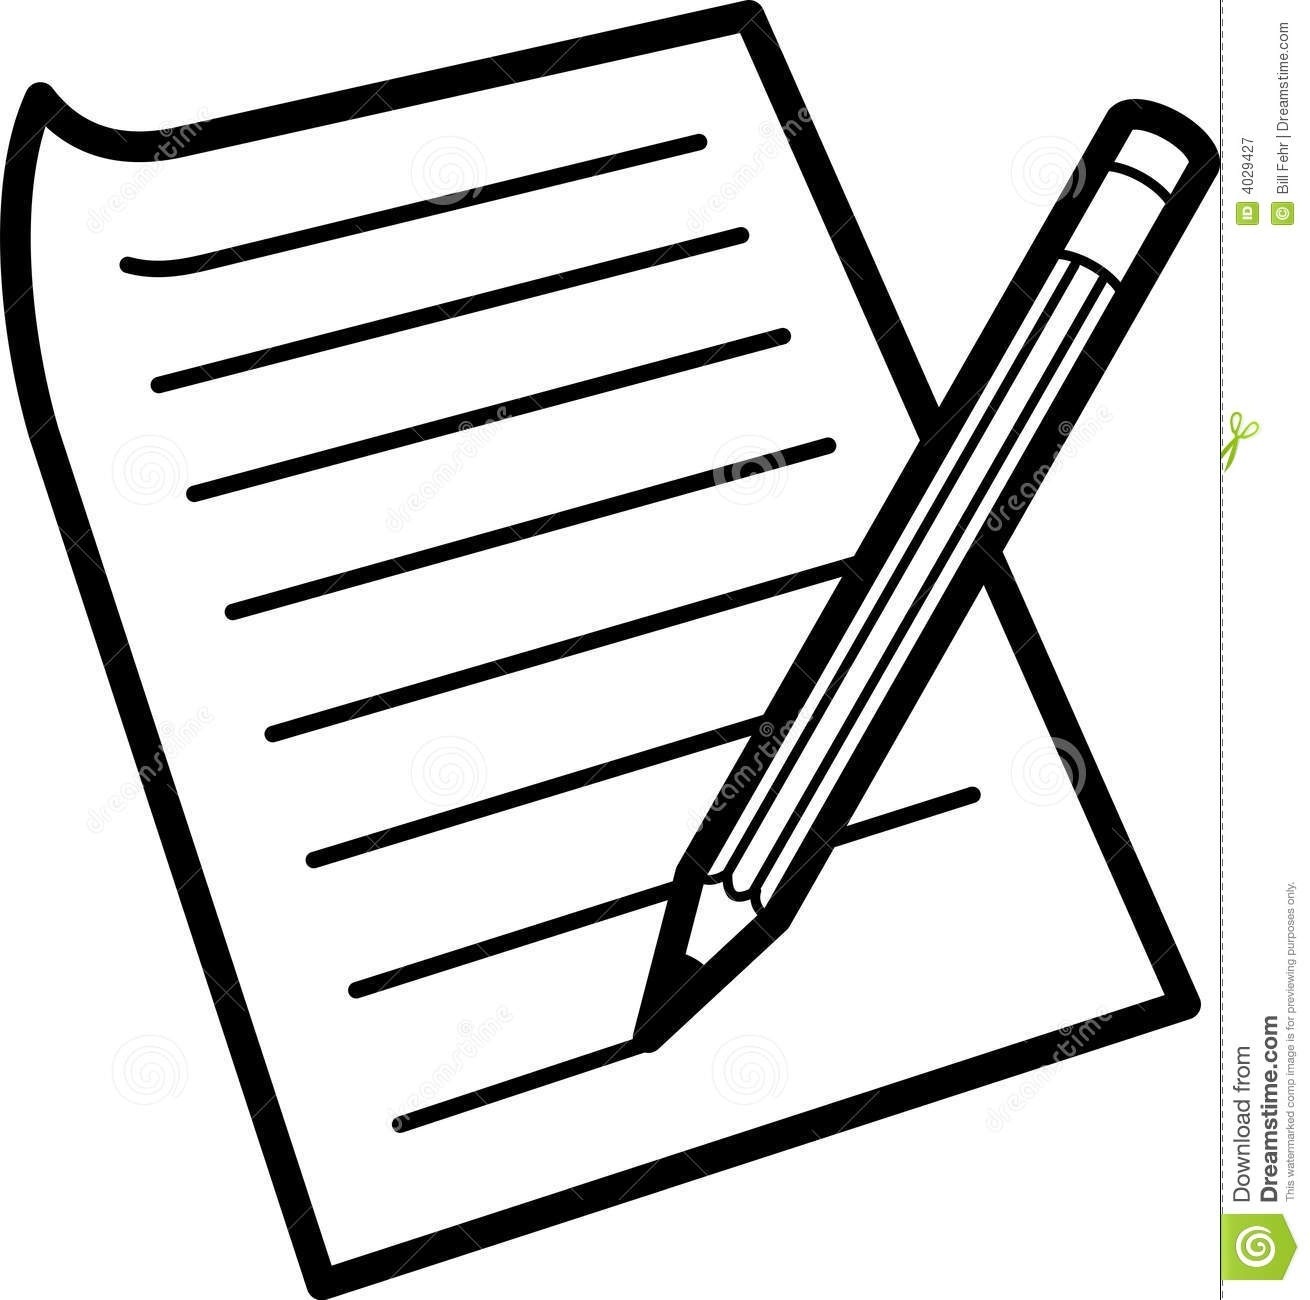 Paper writings and essays. Essay clipart